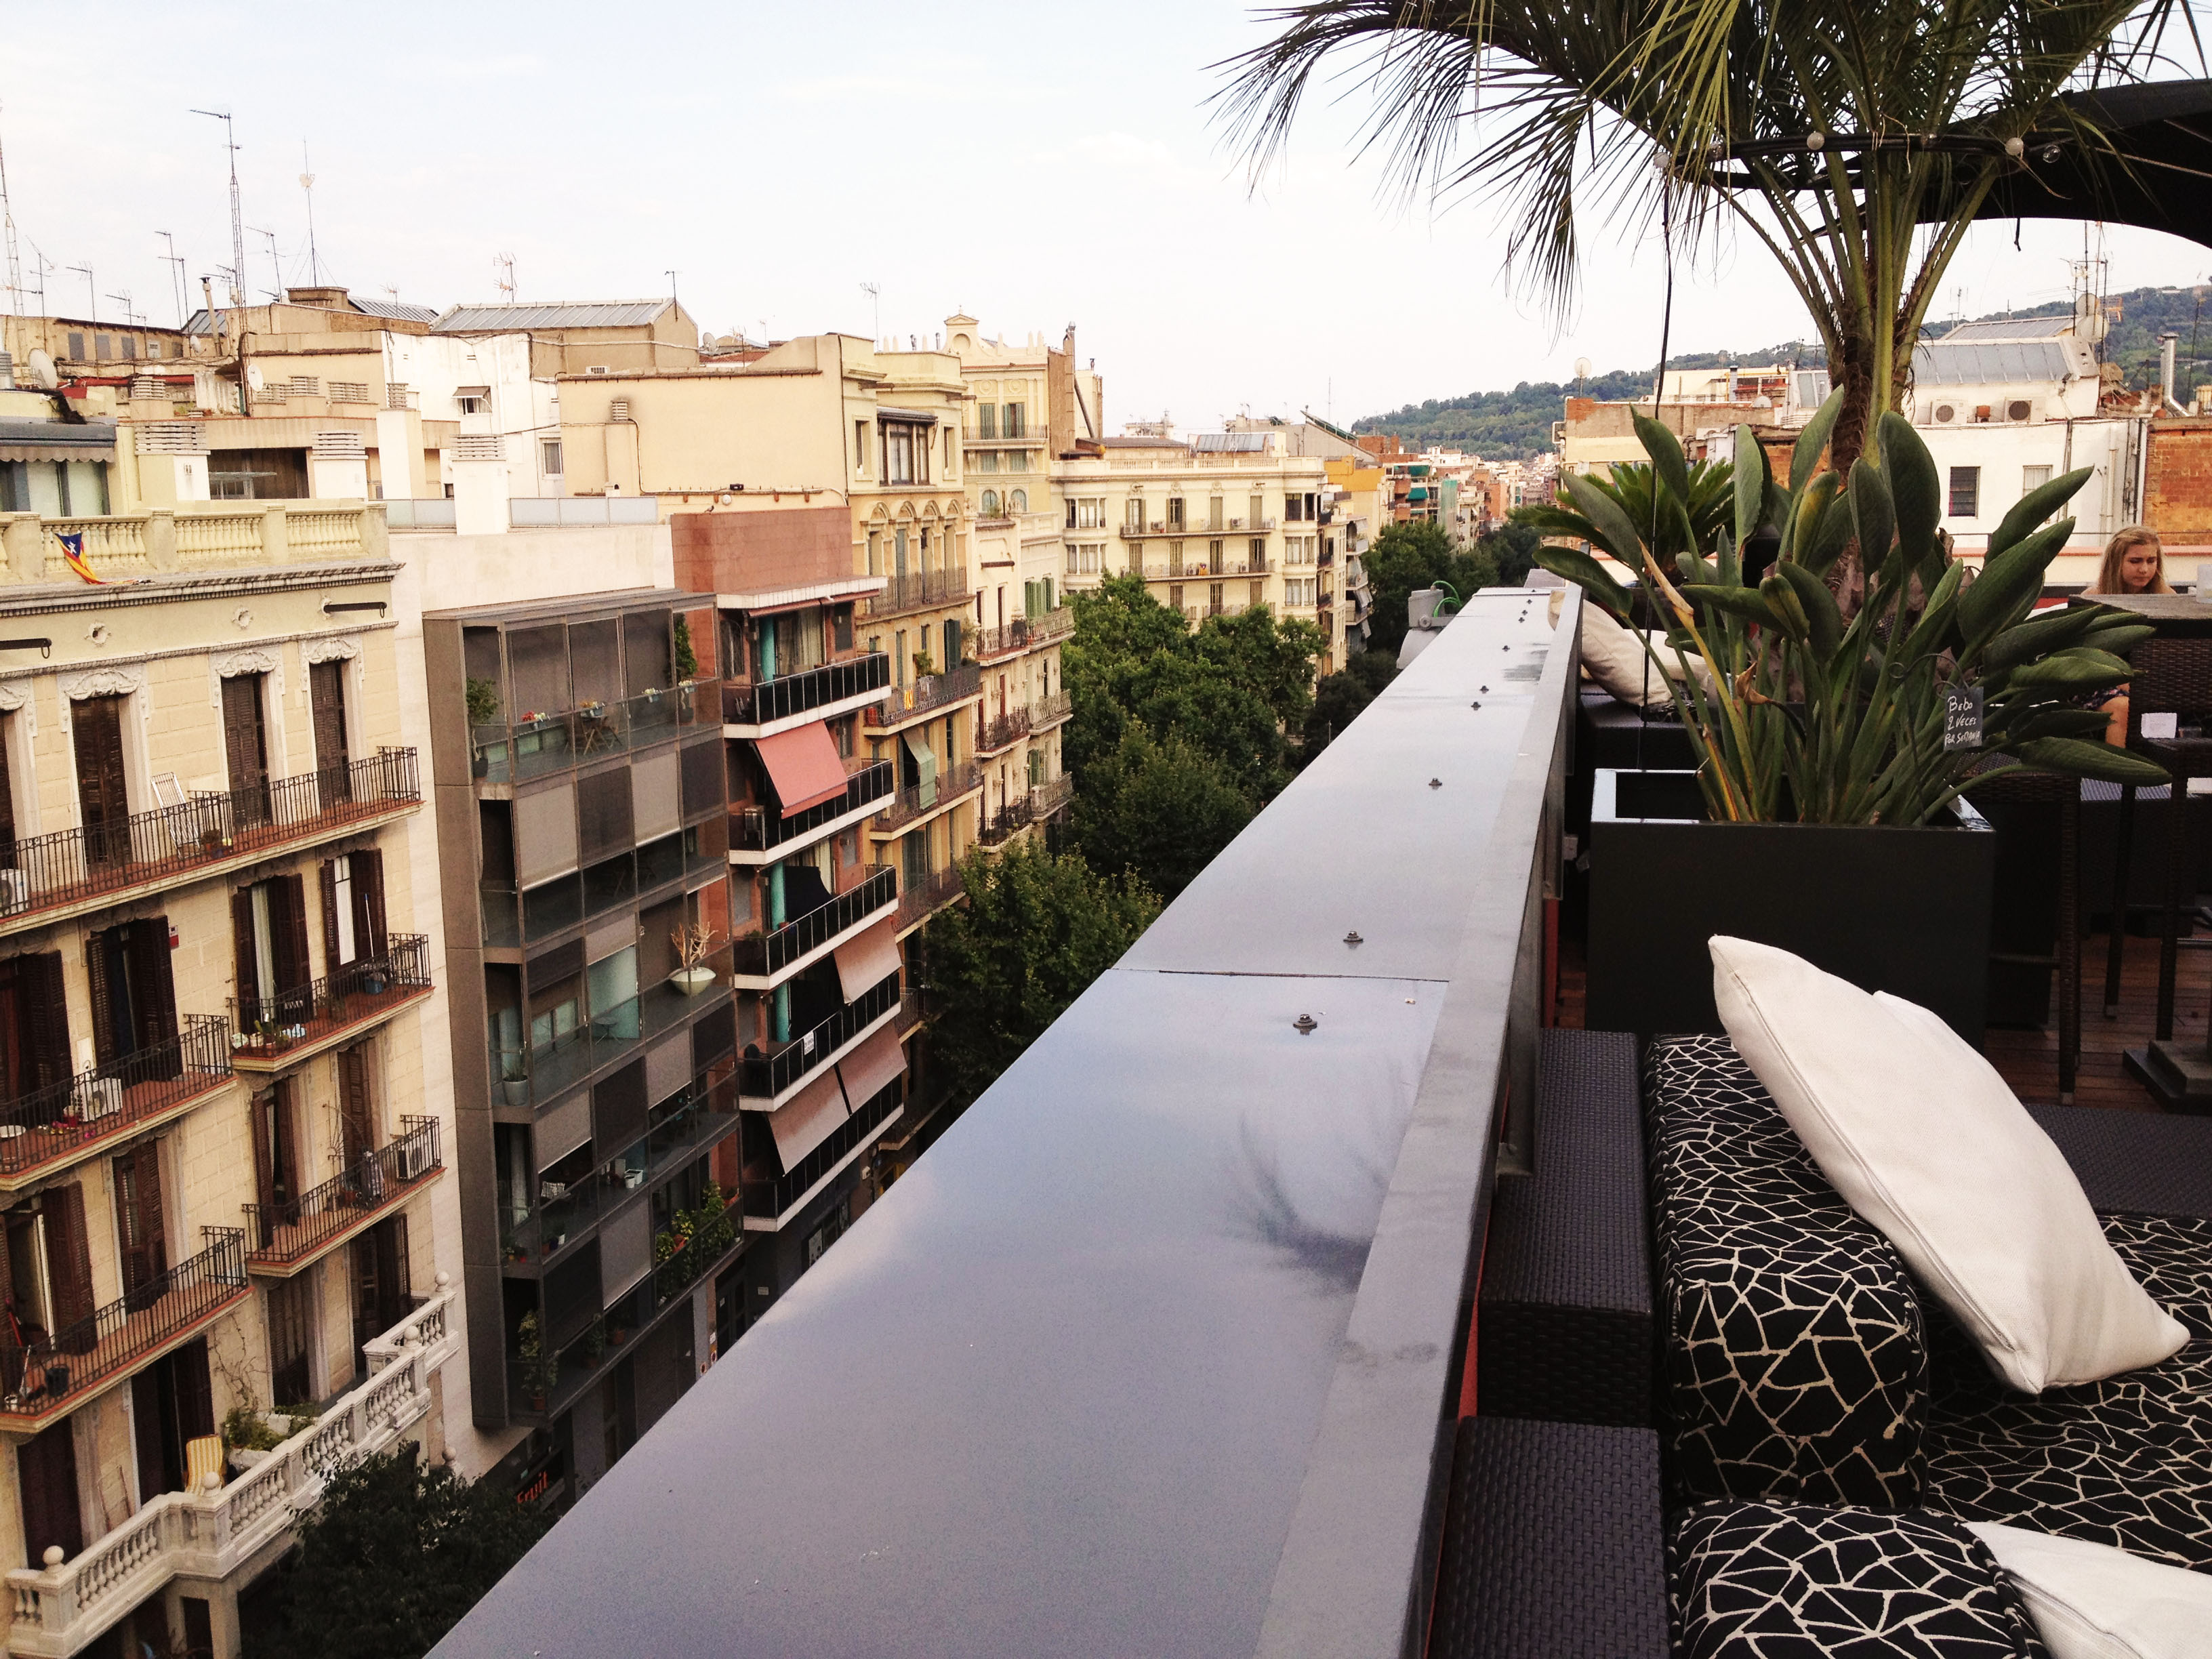 Chilling above Barcelona's roofs